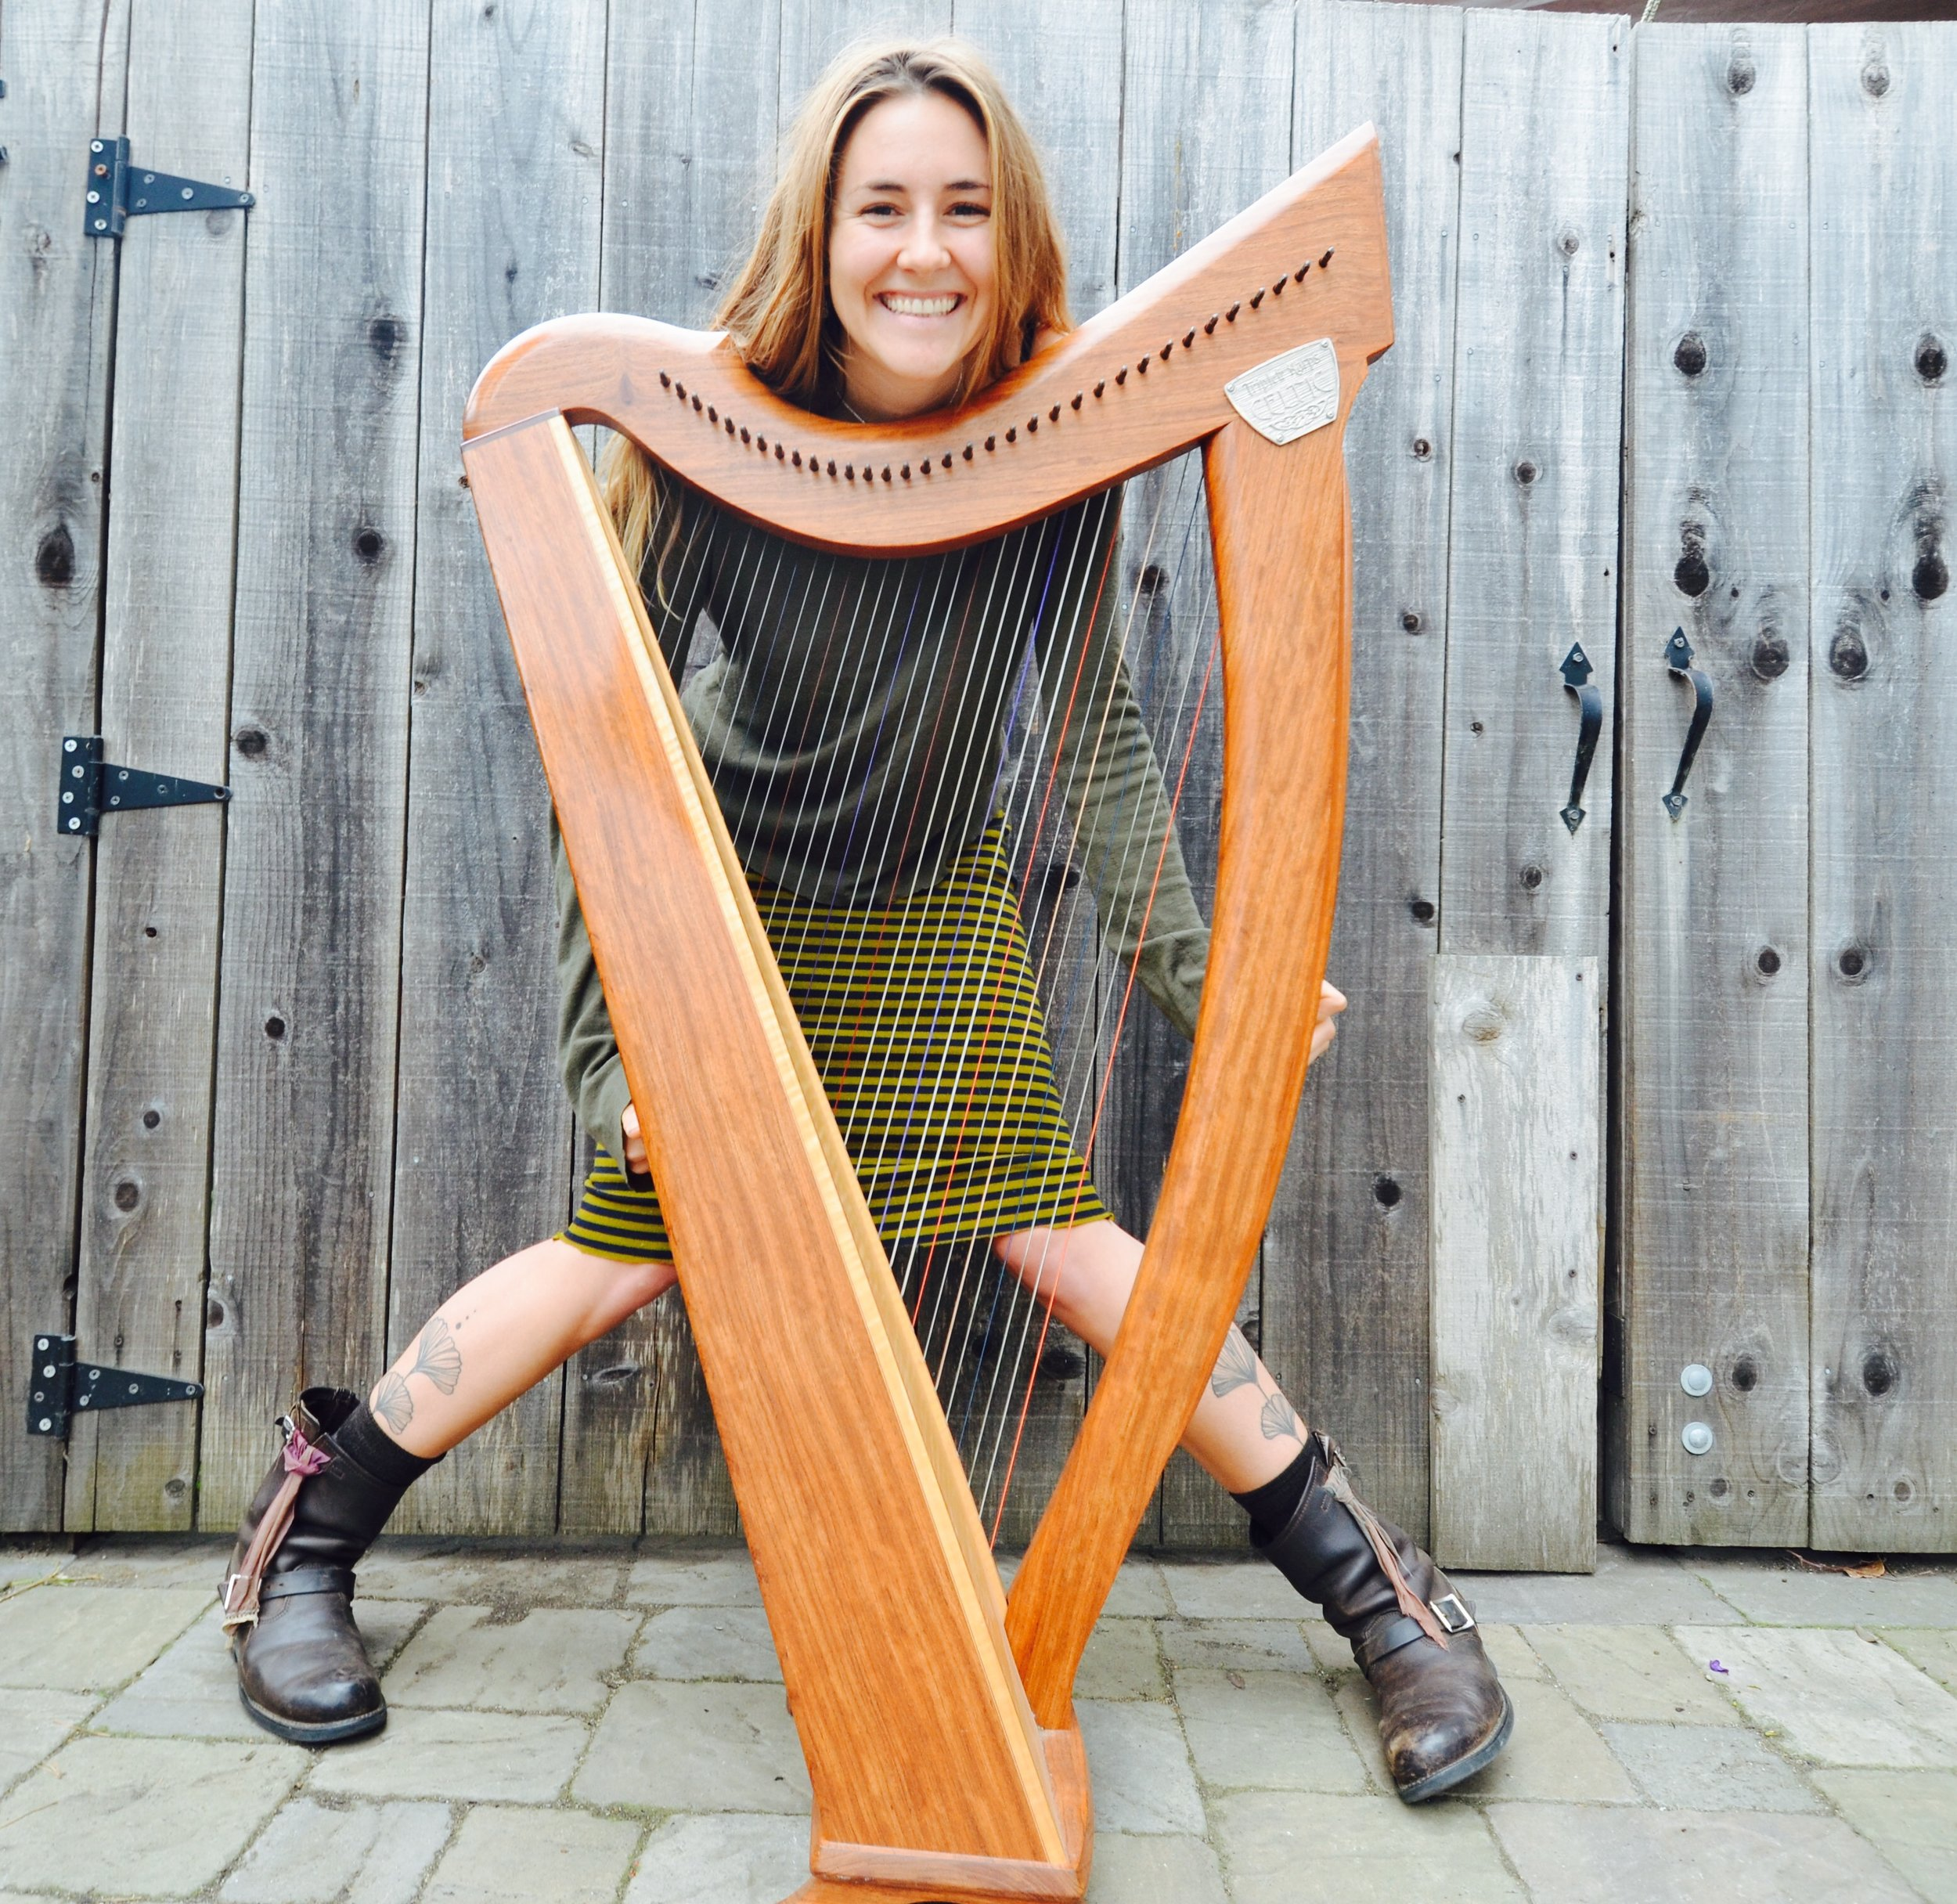 Ella Dawn Jenkins: After 4 years studying traditional Scottish music and the Gaelic language in Glasgow Scotland, Ella Dawn Jenkins is a Bay Area based harpist and songwriter of blues, folk and pop influence. (photo: green dress)